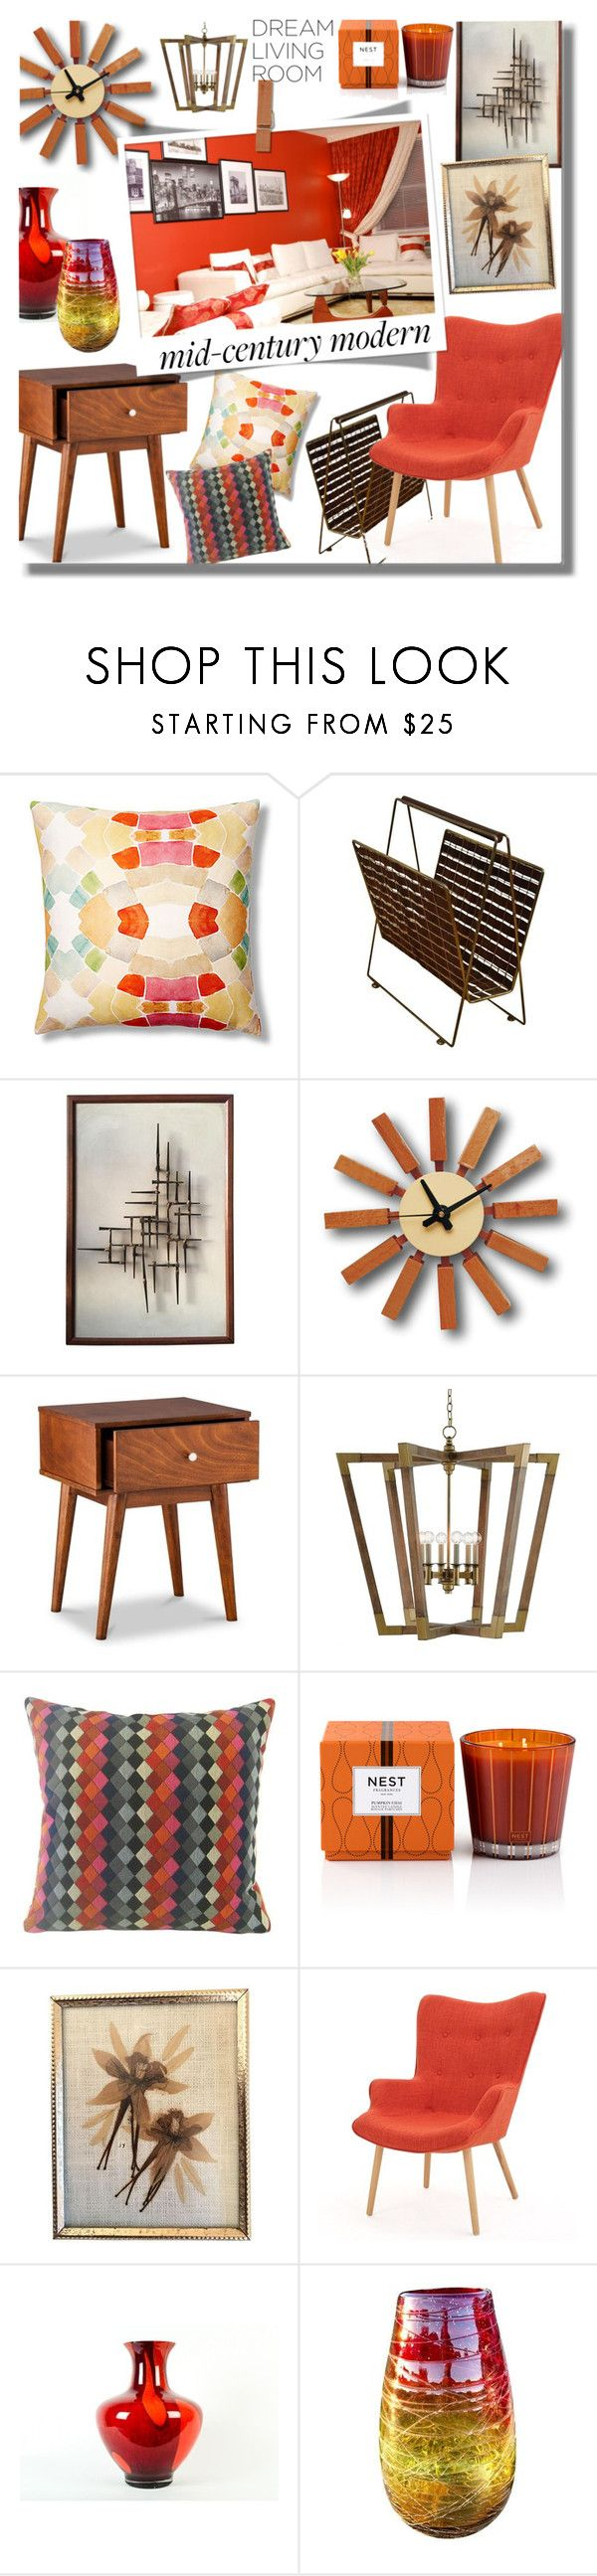 """#377 ~ Clean Spaces: Mid-Century Modern"" by cresentia-titi ❤ liked on Polyvore featuring interior, interiors, interior design, home, home decor, interior decorating, bunglo by shay spaniola, Foremost, Nest Fragrances and Franklin"